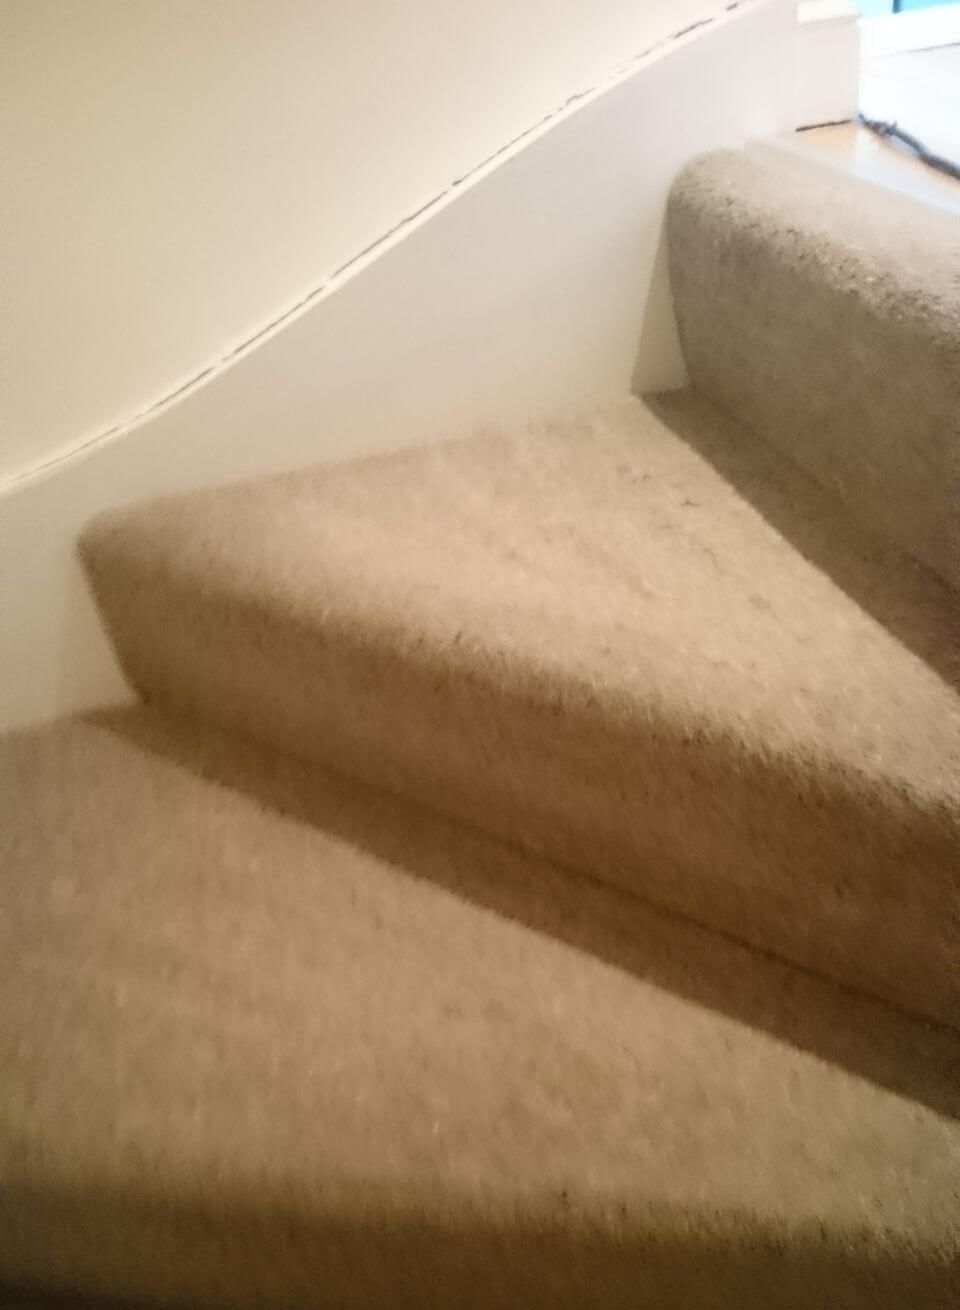 Petts Wood fabric cleaning BR5